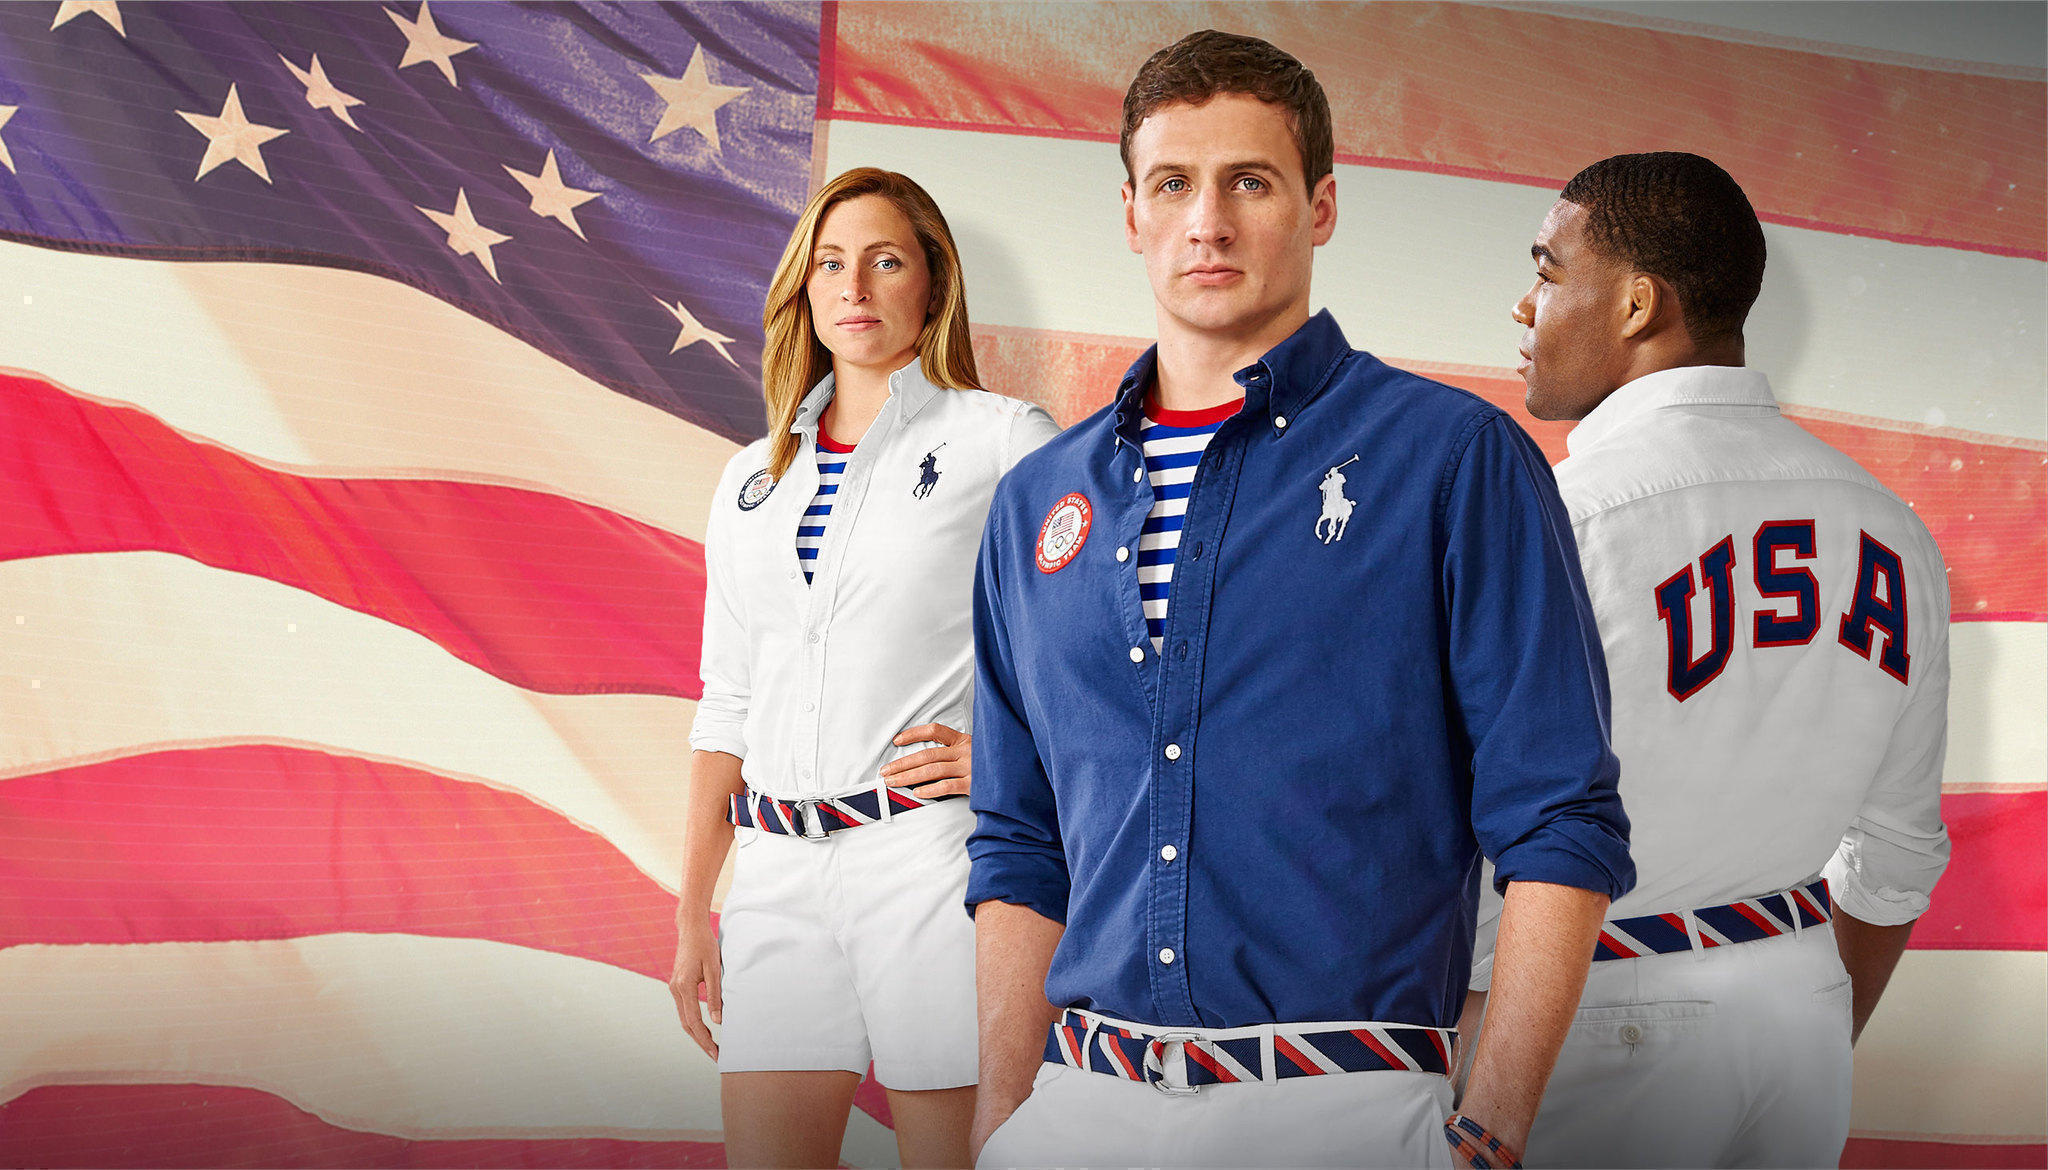 The Polo Ralph Lauren 2016 U.S. Olympic collection: Four things to think about - LA